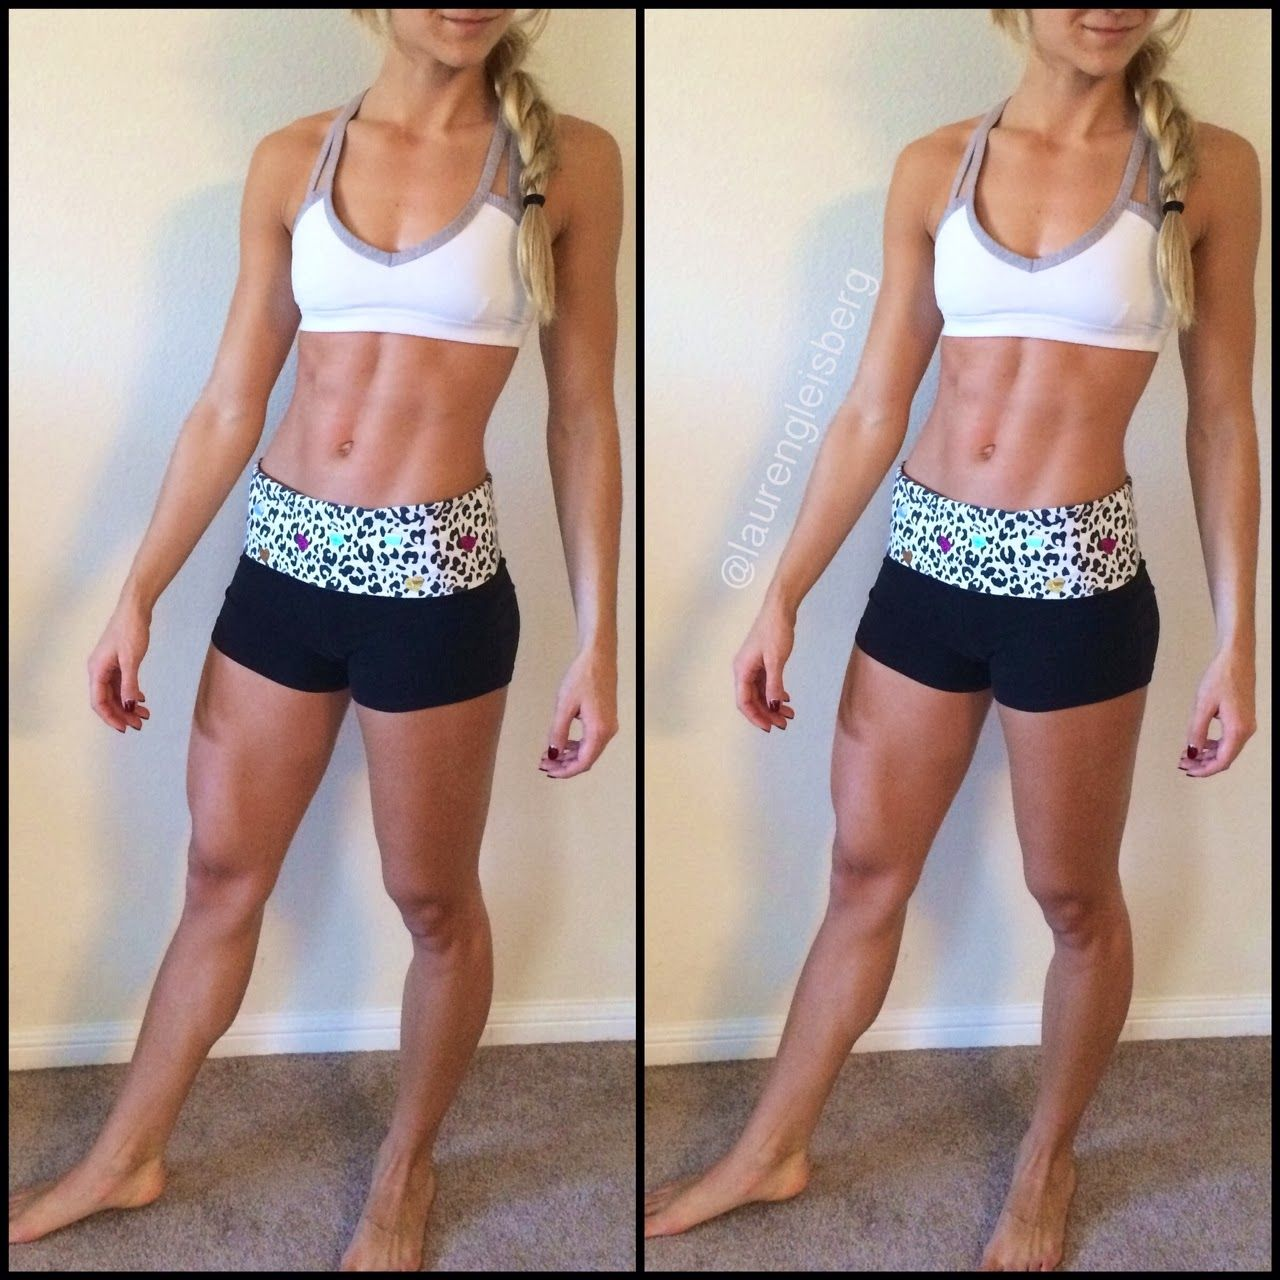 Workouts & meal plans to help build a feminine, fit body